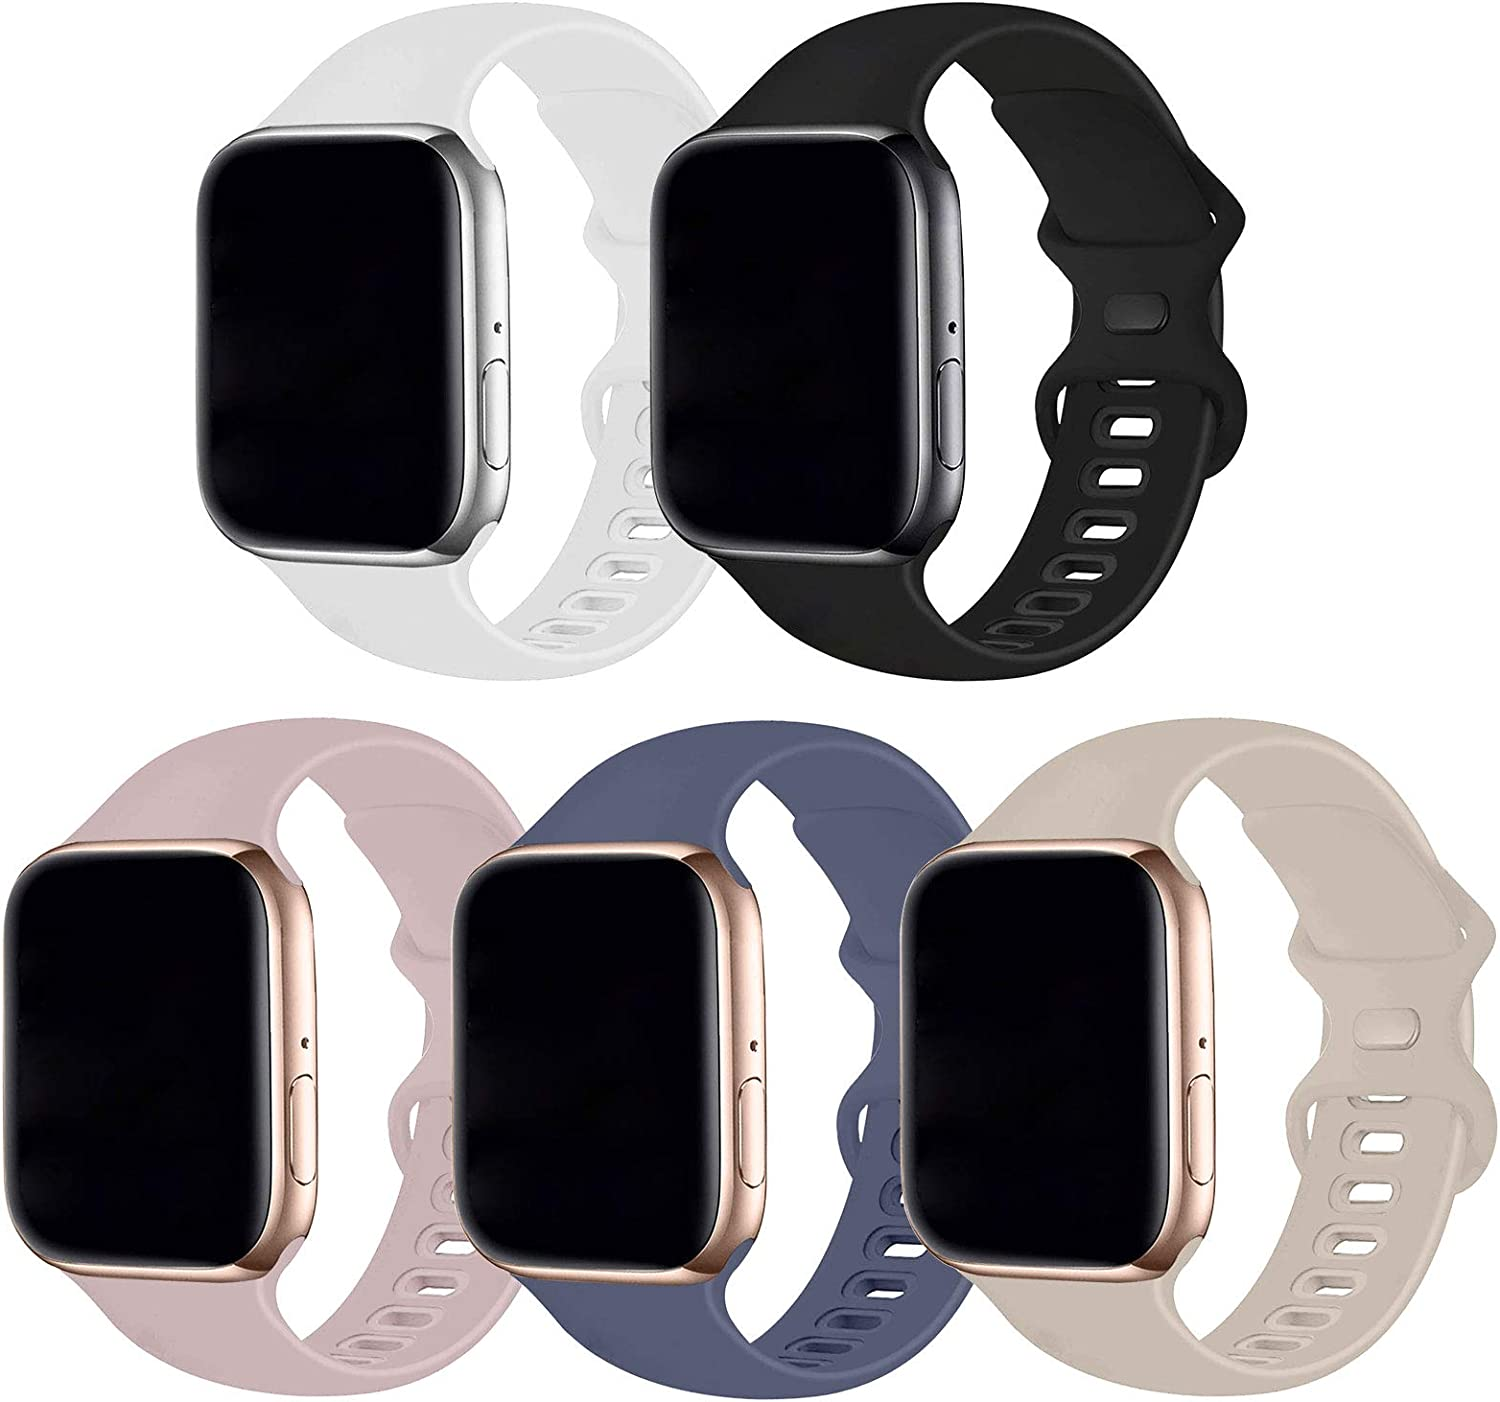 Bifeiyo 5 Pack Compatible with Apple Watch Band 42mm 44mm SM,Soft Silicone Sport Replacement Straps Compatible for iWatch Series6/5/4/3/2/1/SE(Black/White/Stone/Pink Sand/Lavender Gray)